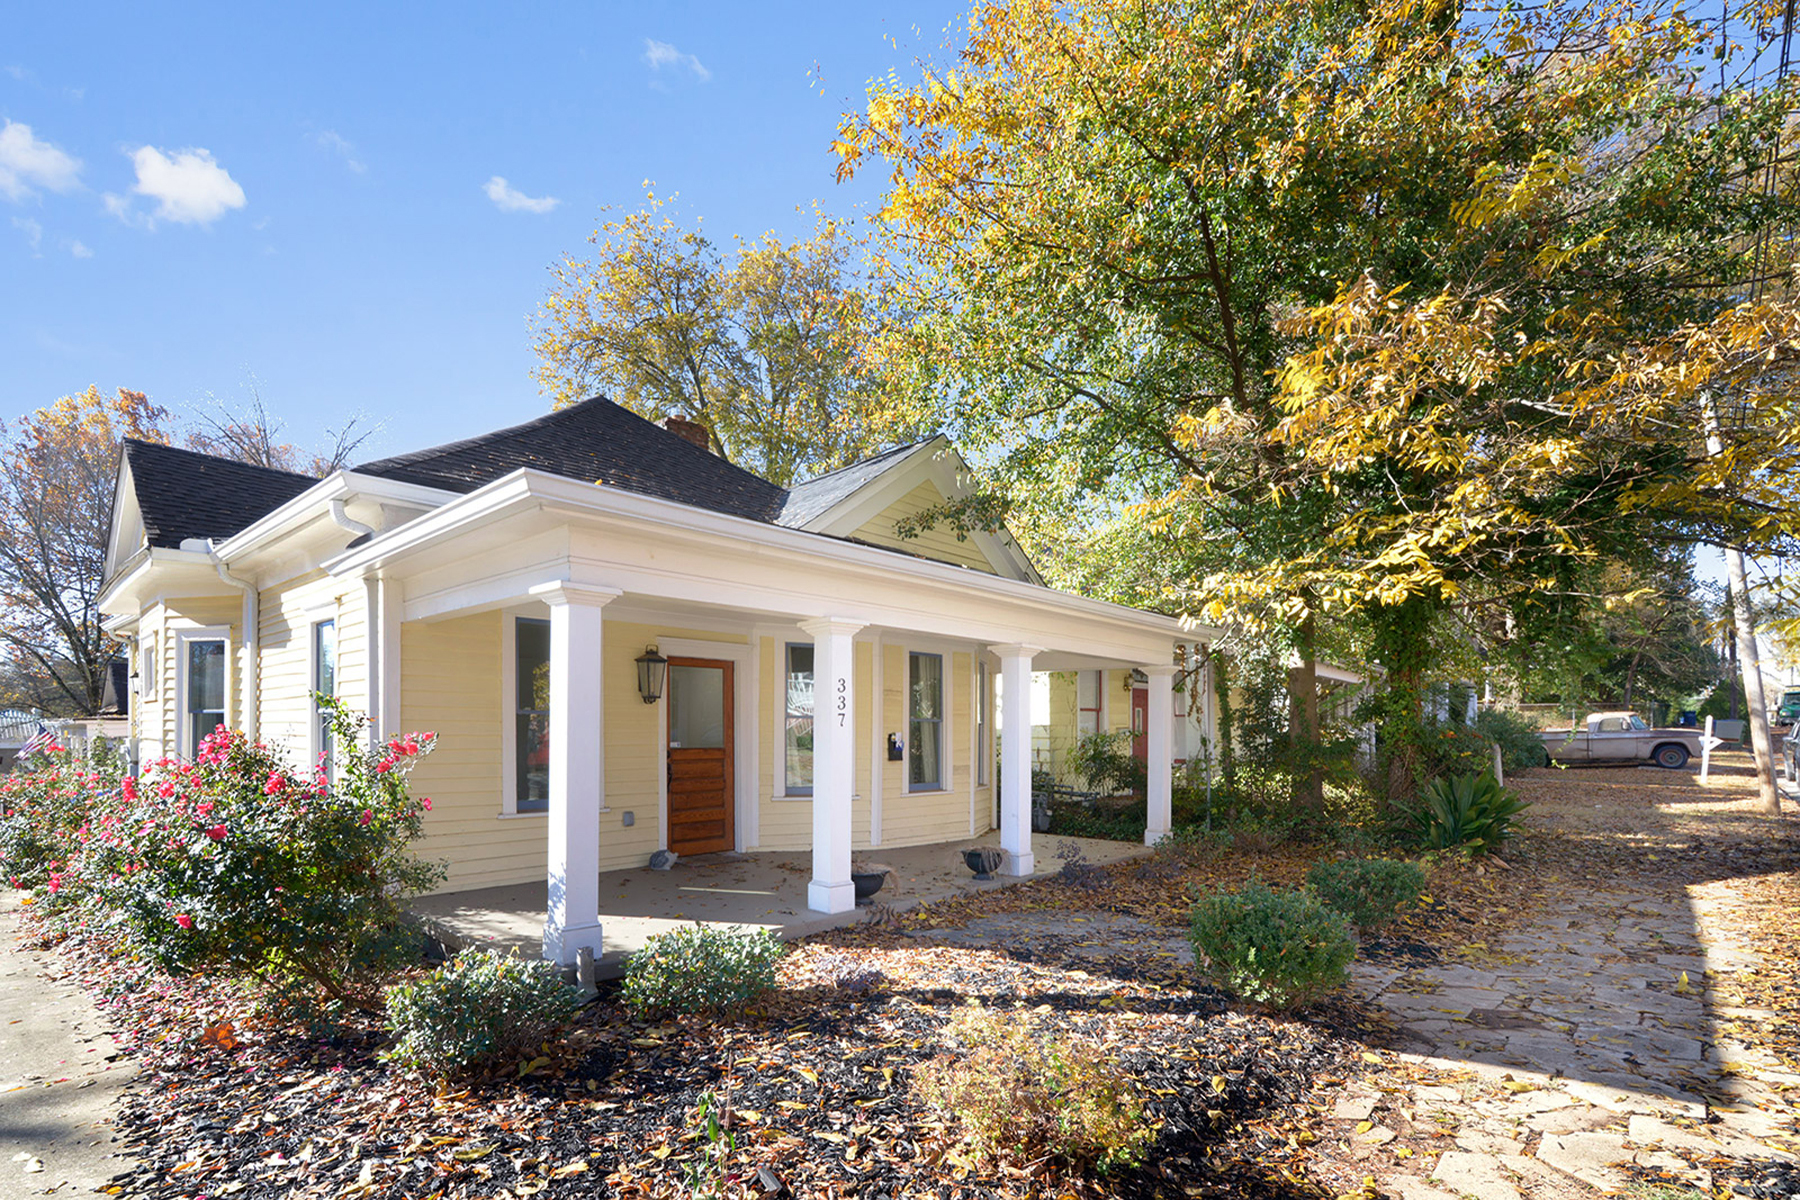 Single Family Home for Rent at Charming Grant Park Home 337 Grant Park Place Atlanta, Georgia 30315 United States